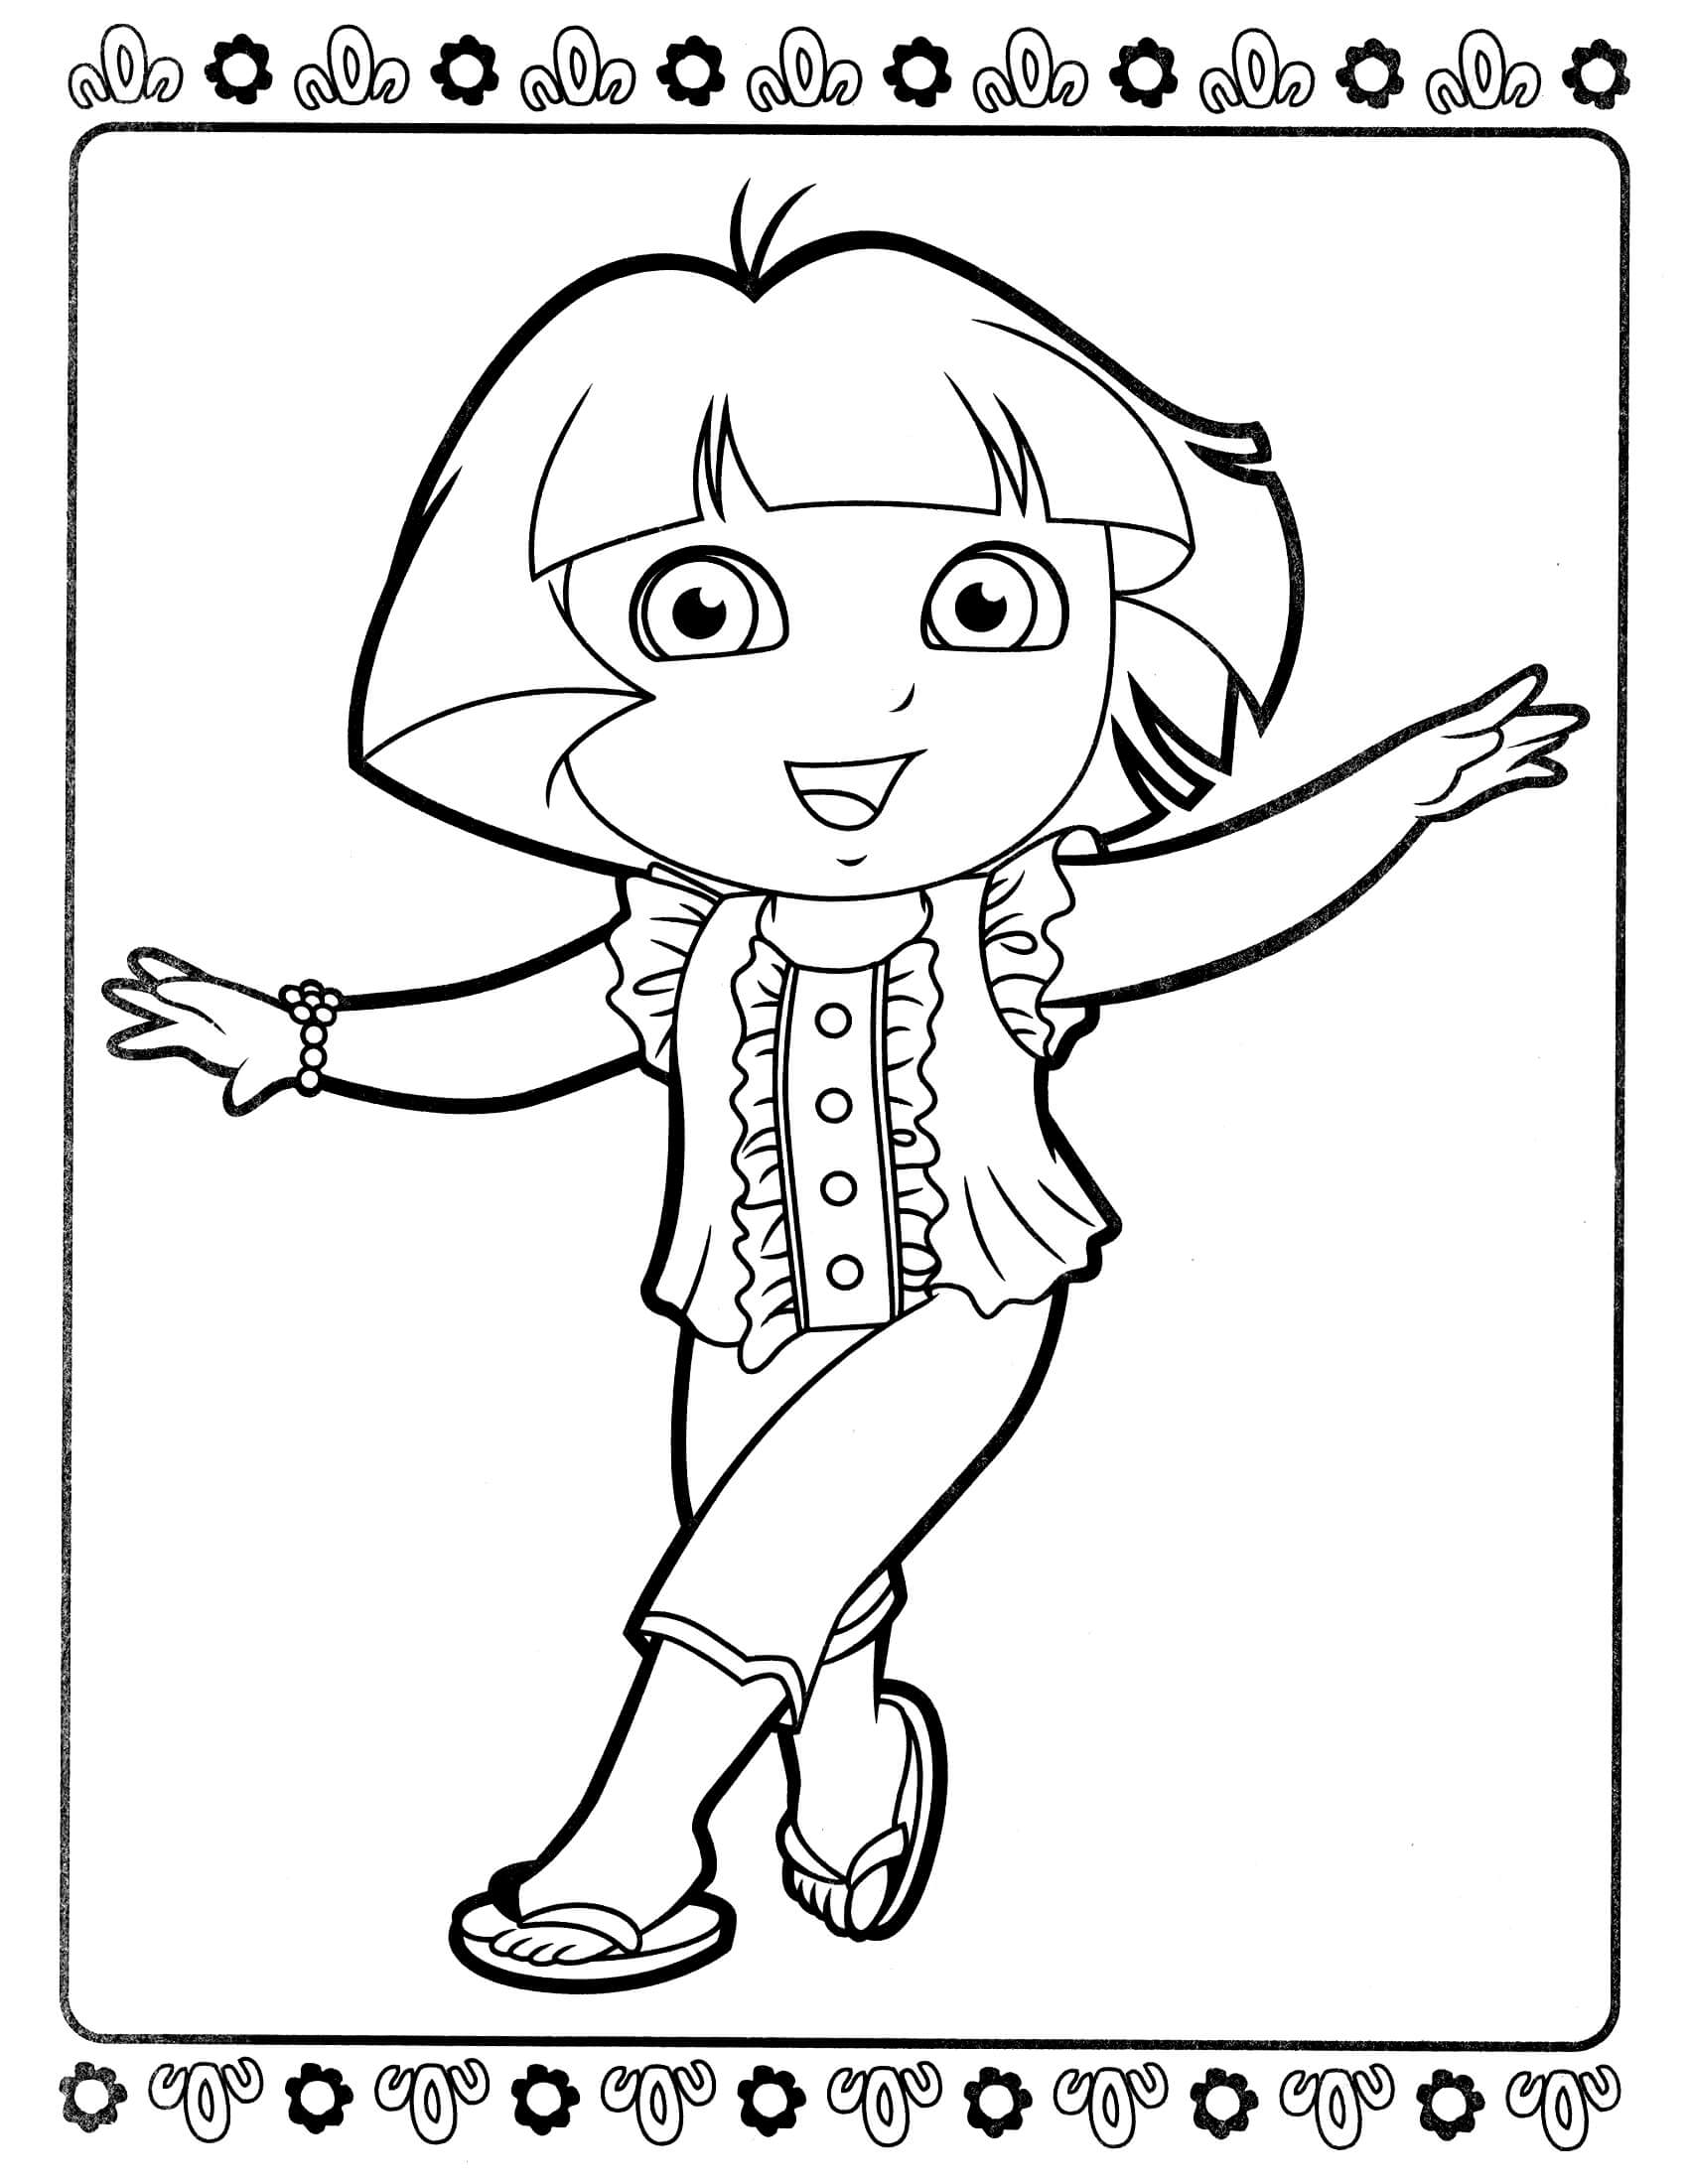 coloring pages dora and friends dora coloring pages backpack diego boots swiper print pages coloring friends dora and